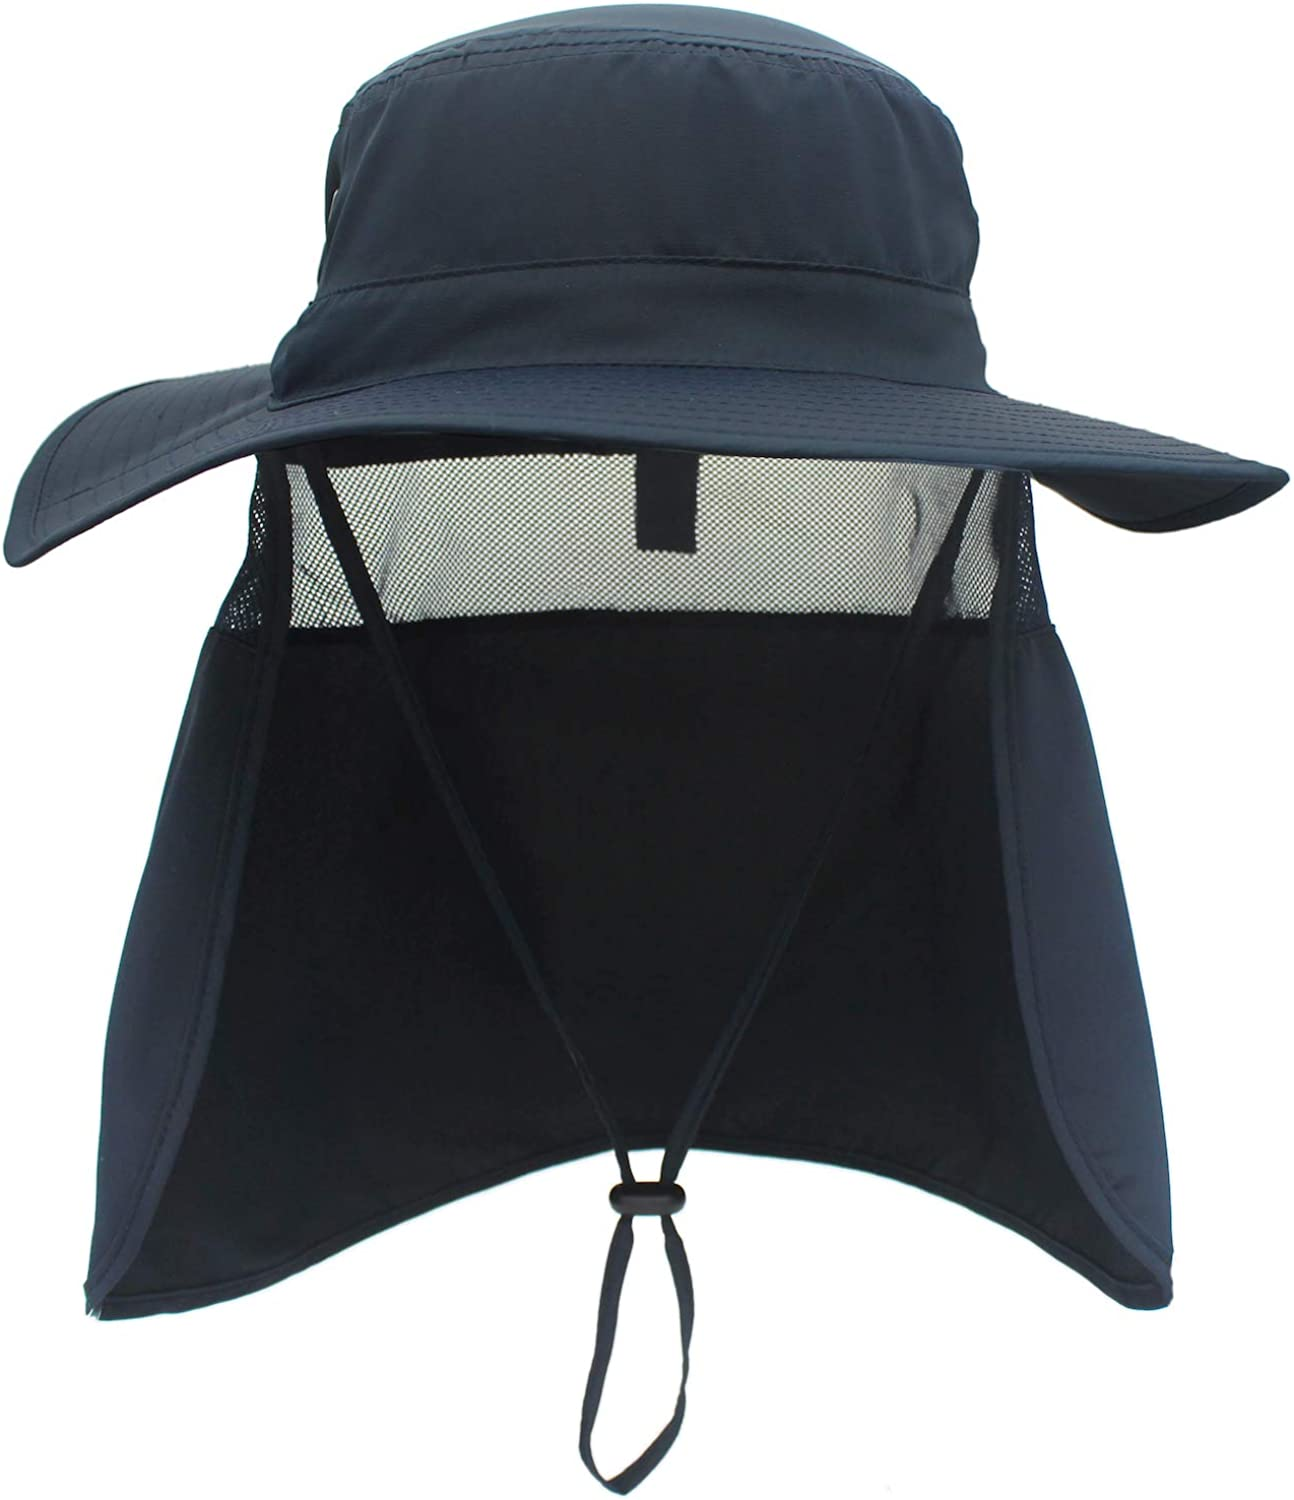 Home Prefer Mens Sun Hat with Neck Flap Quick Dry UV Protection Caps Fishing Hat